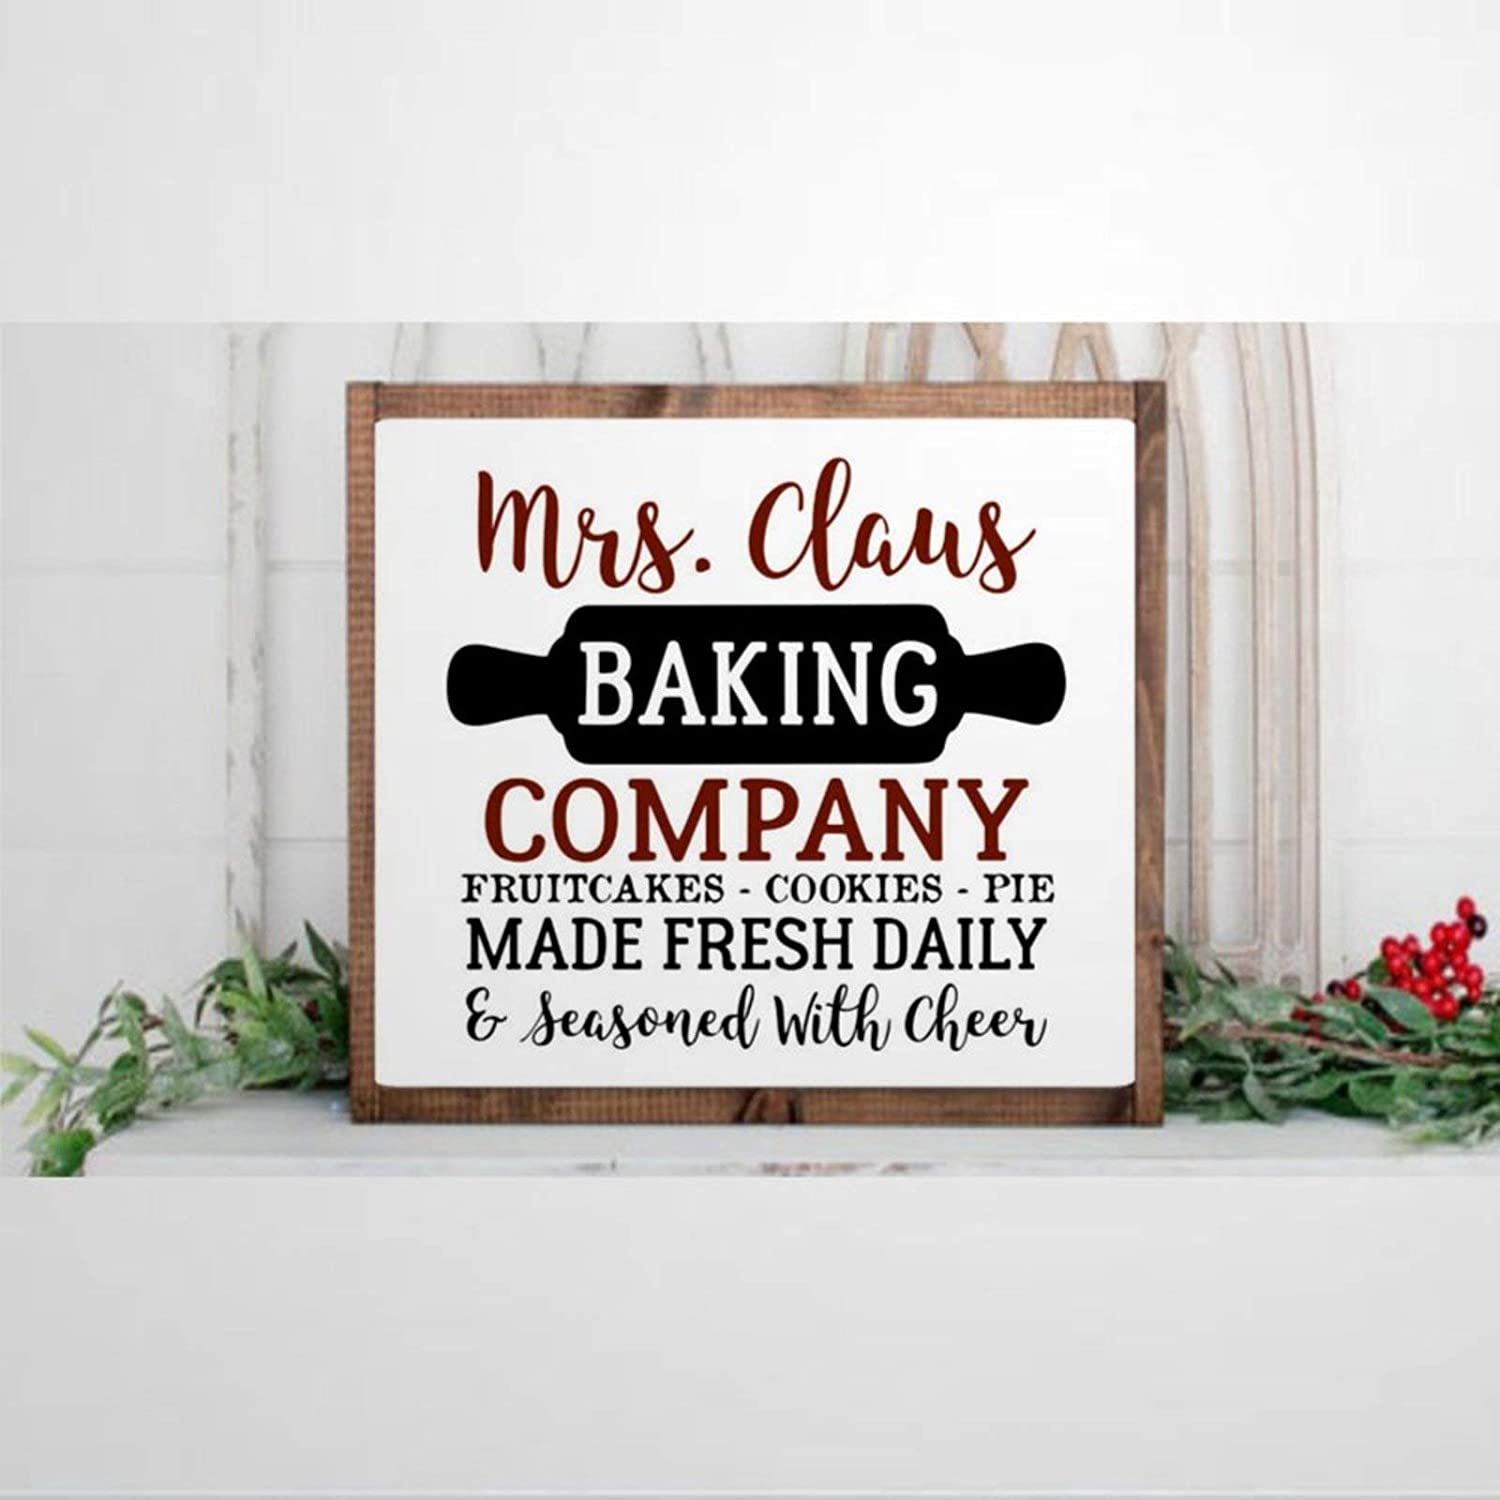 DONL9BAUER Framed Wooden Sign Mrs. Claus Baking Company Wall Hanging Christmas, Farmhouse Kitchen, Holiday Farmhouse Home Decor Wall Art for Living Room